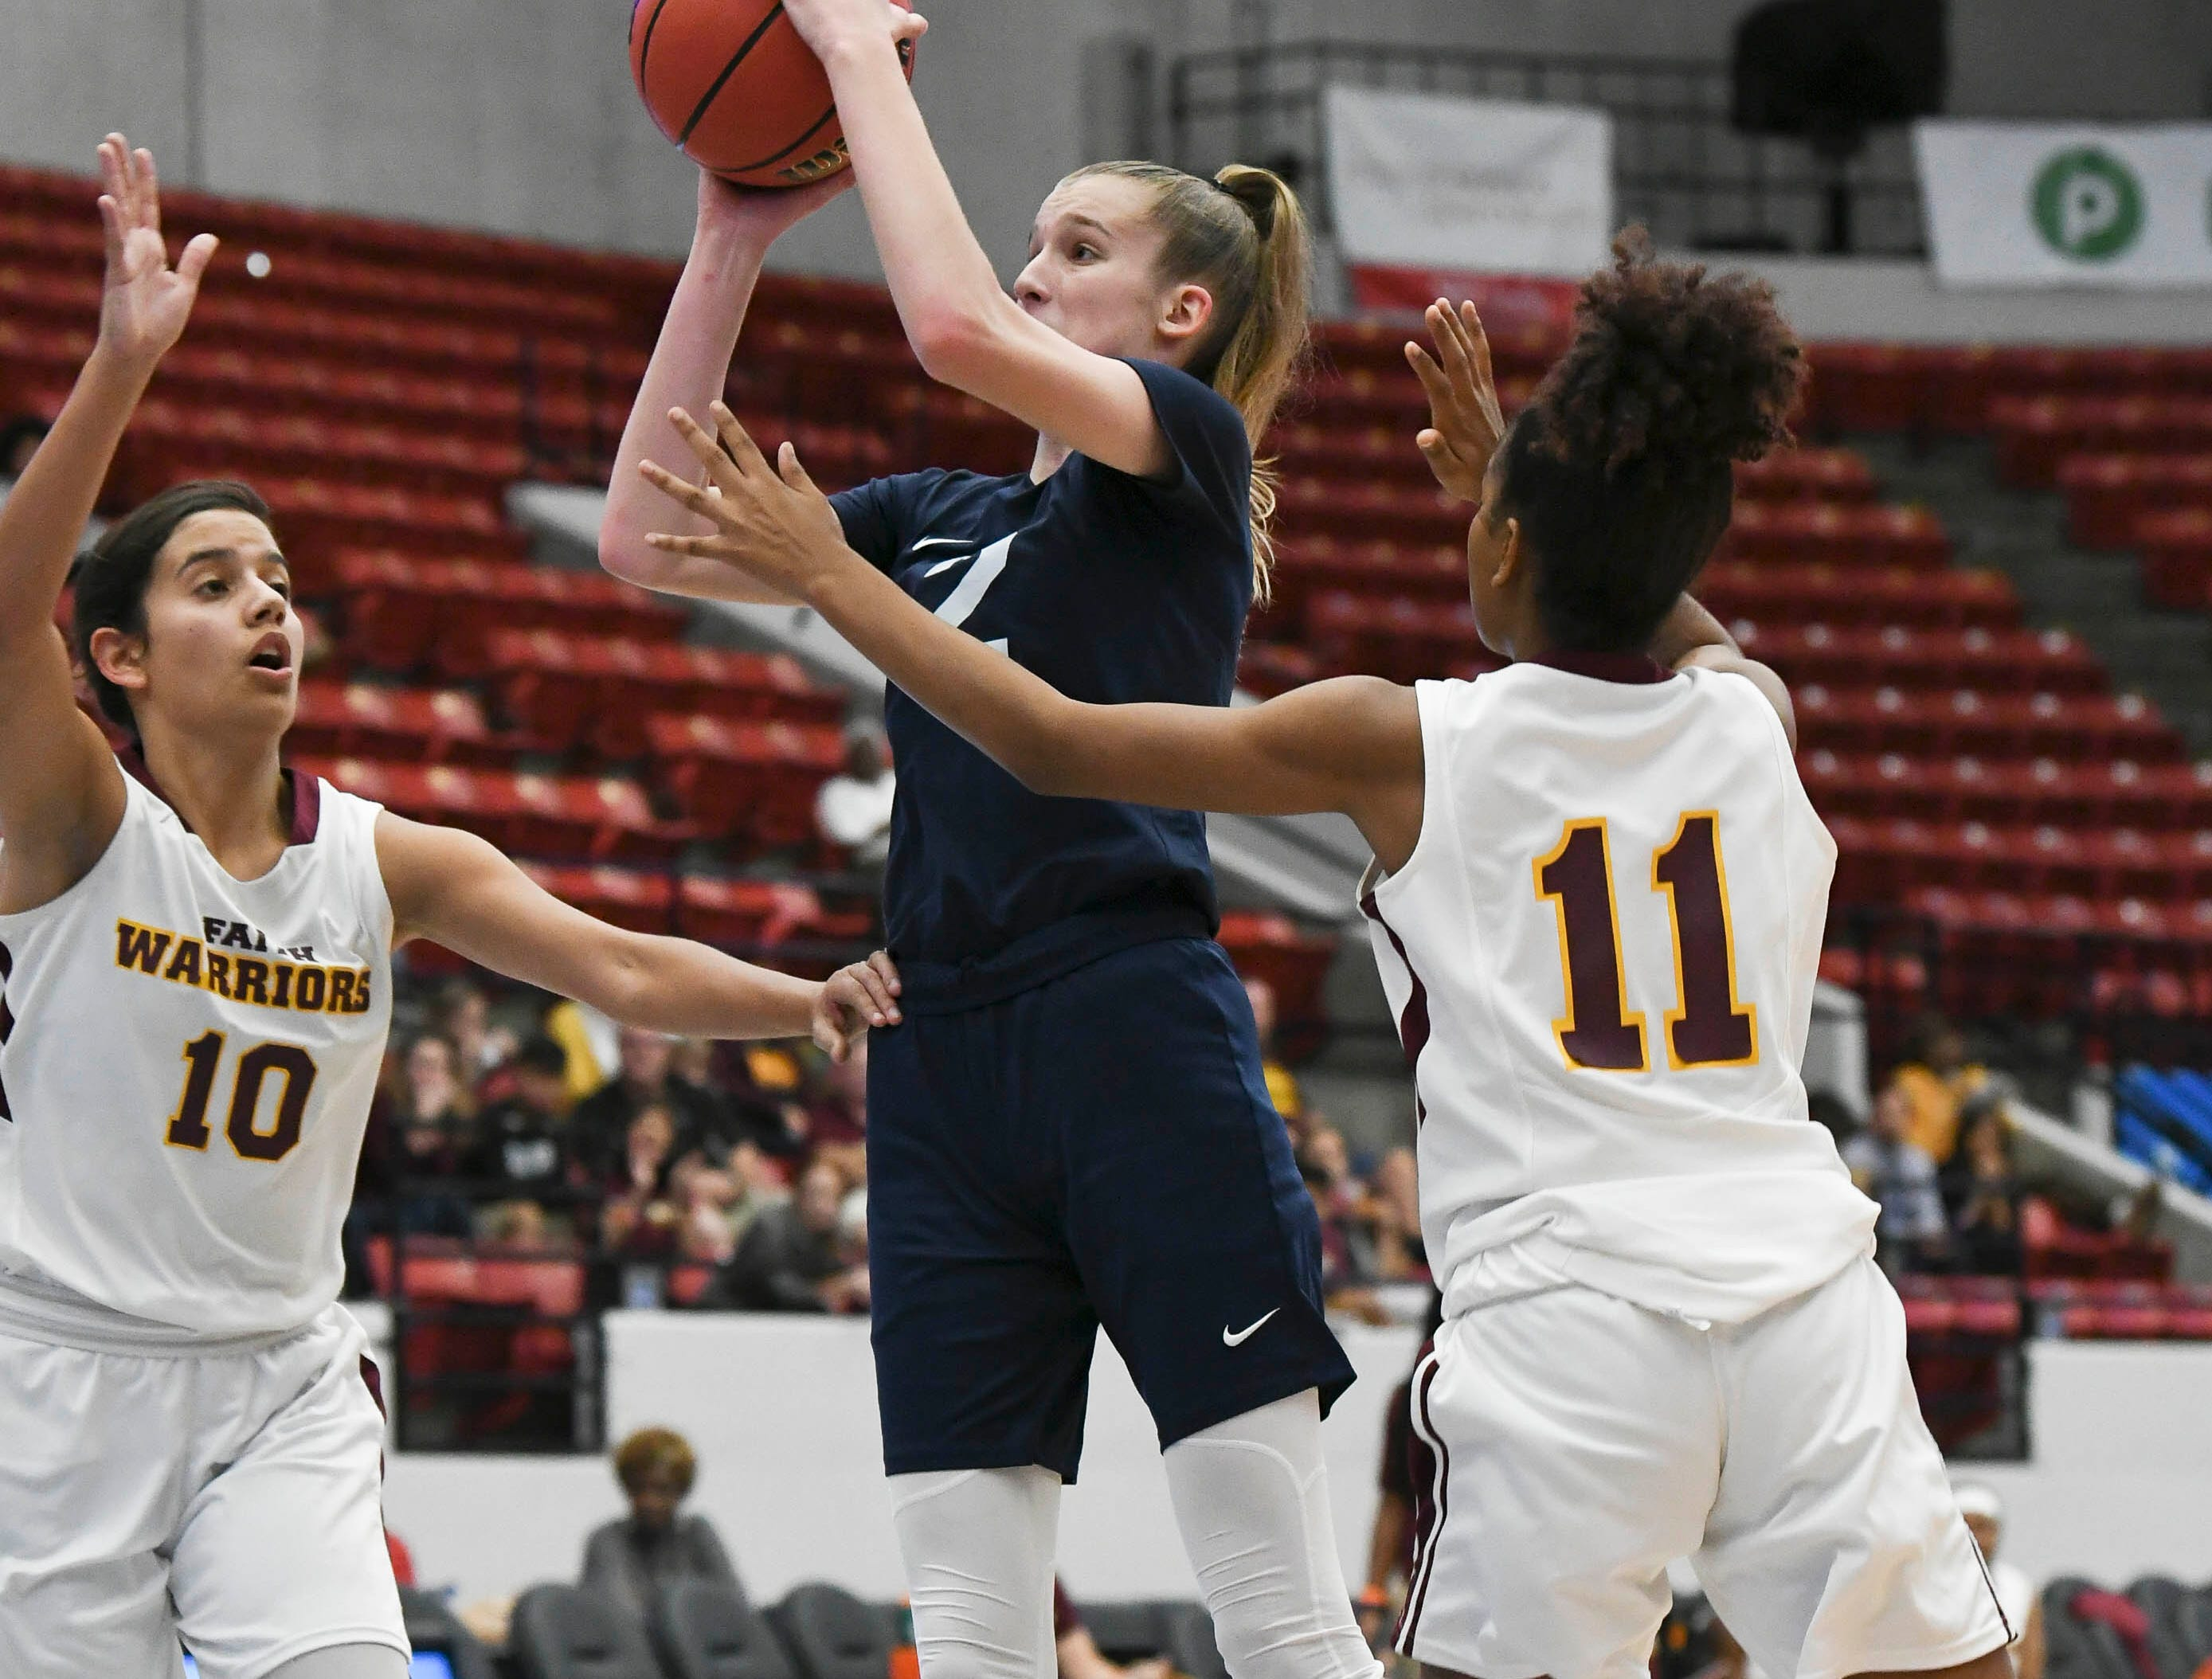 Emma Risch of Florida Prep shoots through Bayshore Christian defenders Fabiana Limongi (10) and Sierra Bell (11) during Tuesday's Class 2A state championship game.